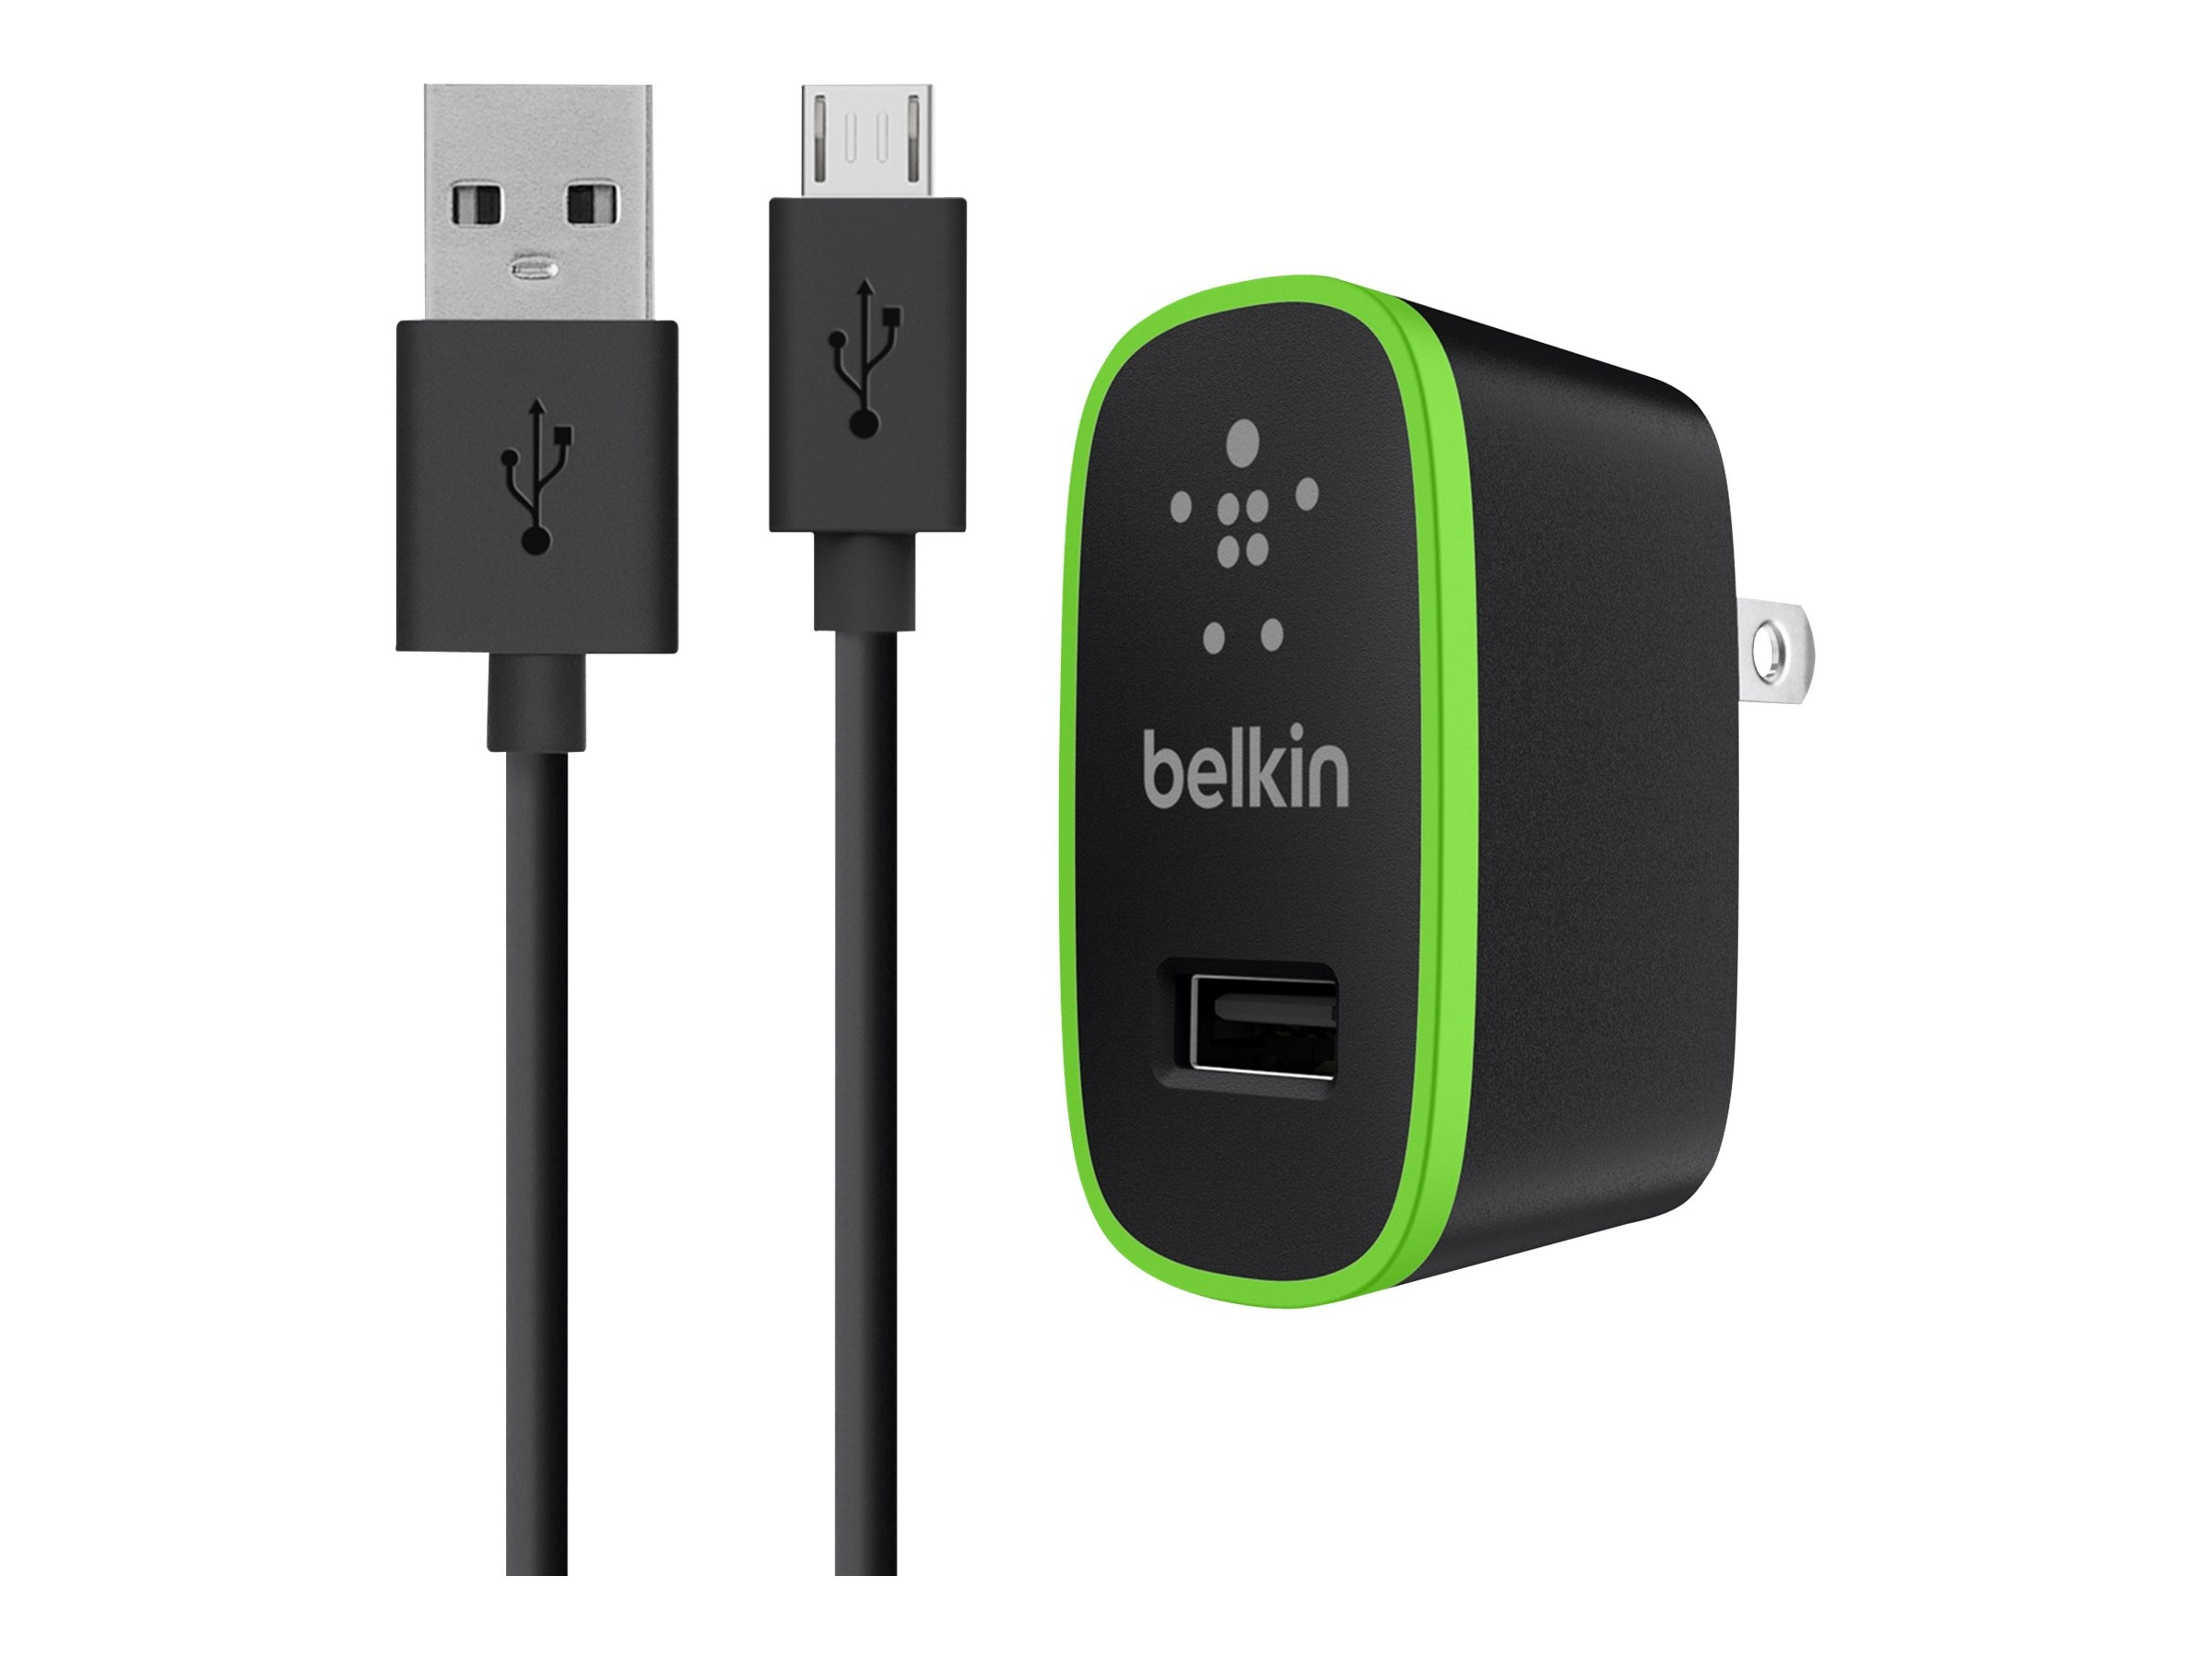 Belkin Universal Home Charger, Micro-USB Charge Sync Cable, 10W 2.1A, Black, F8M667TT04-BLK